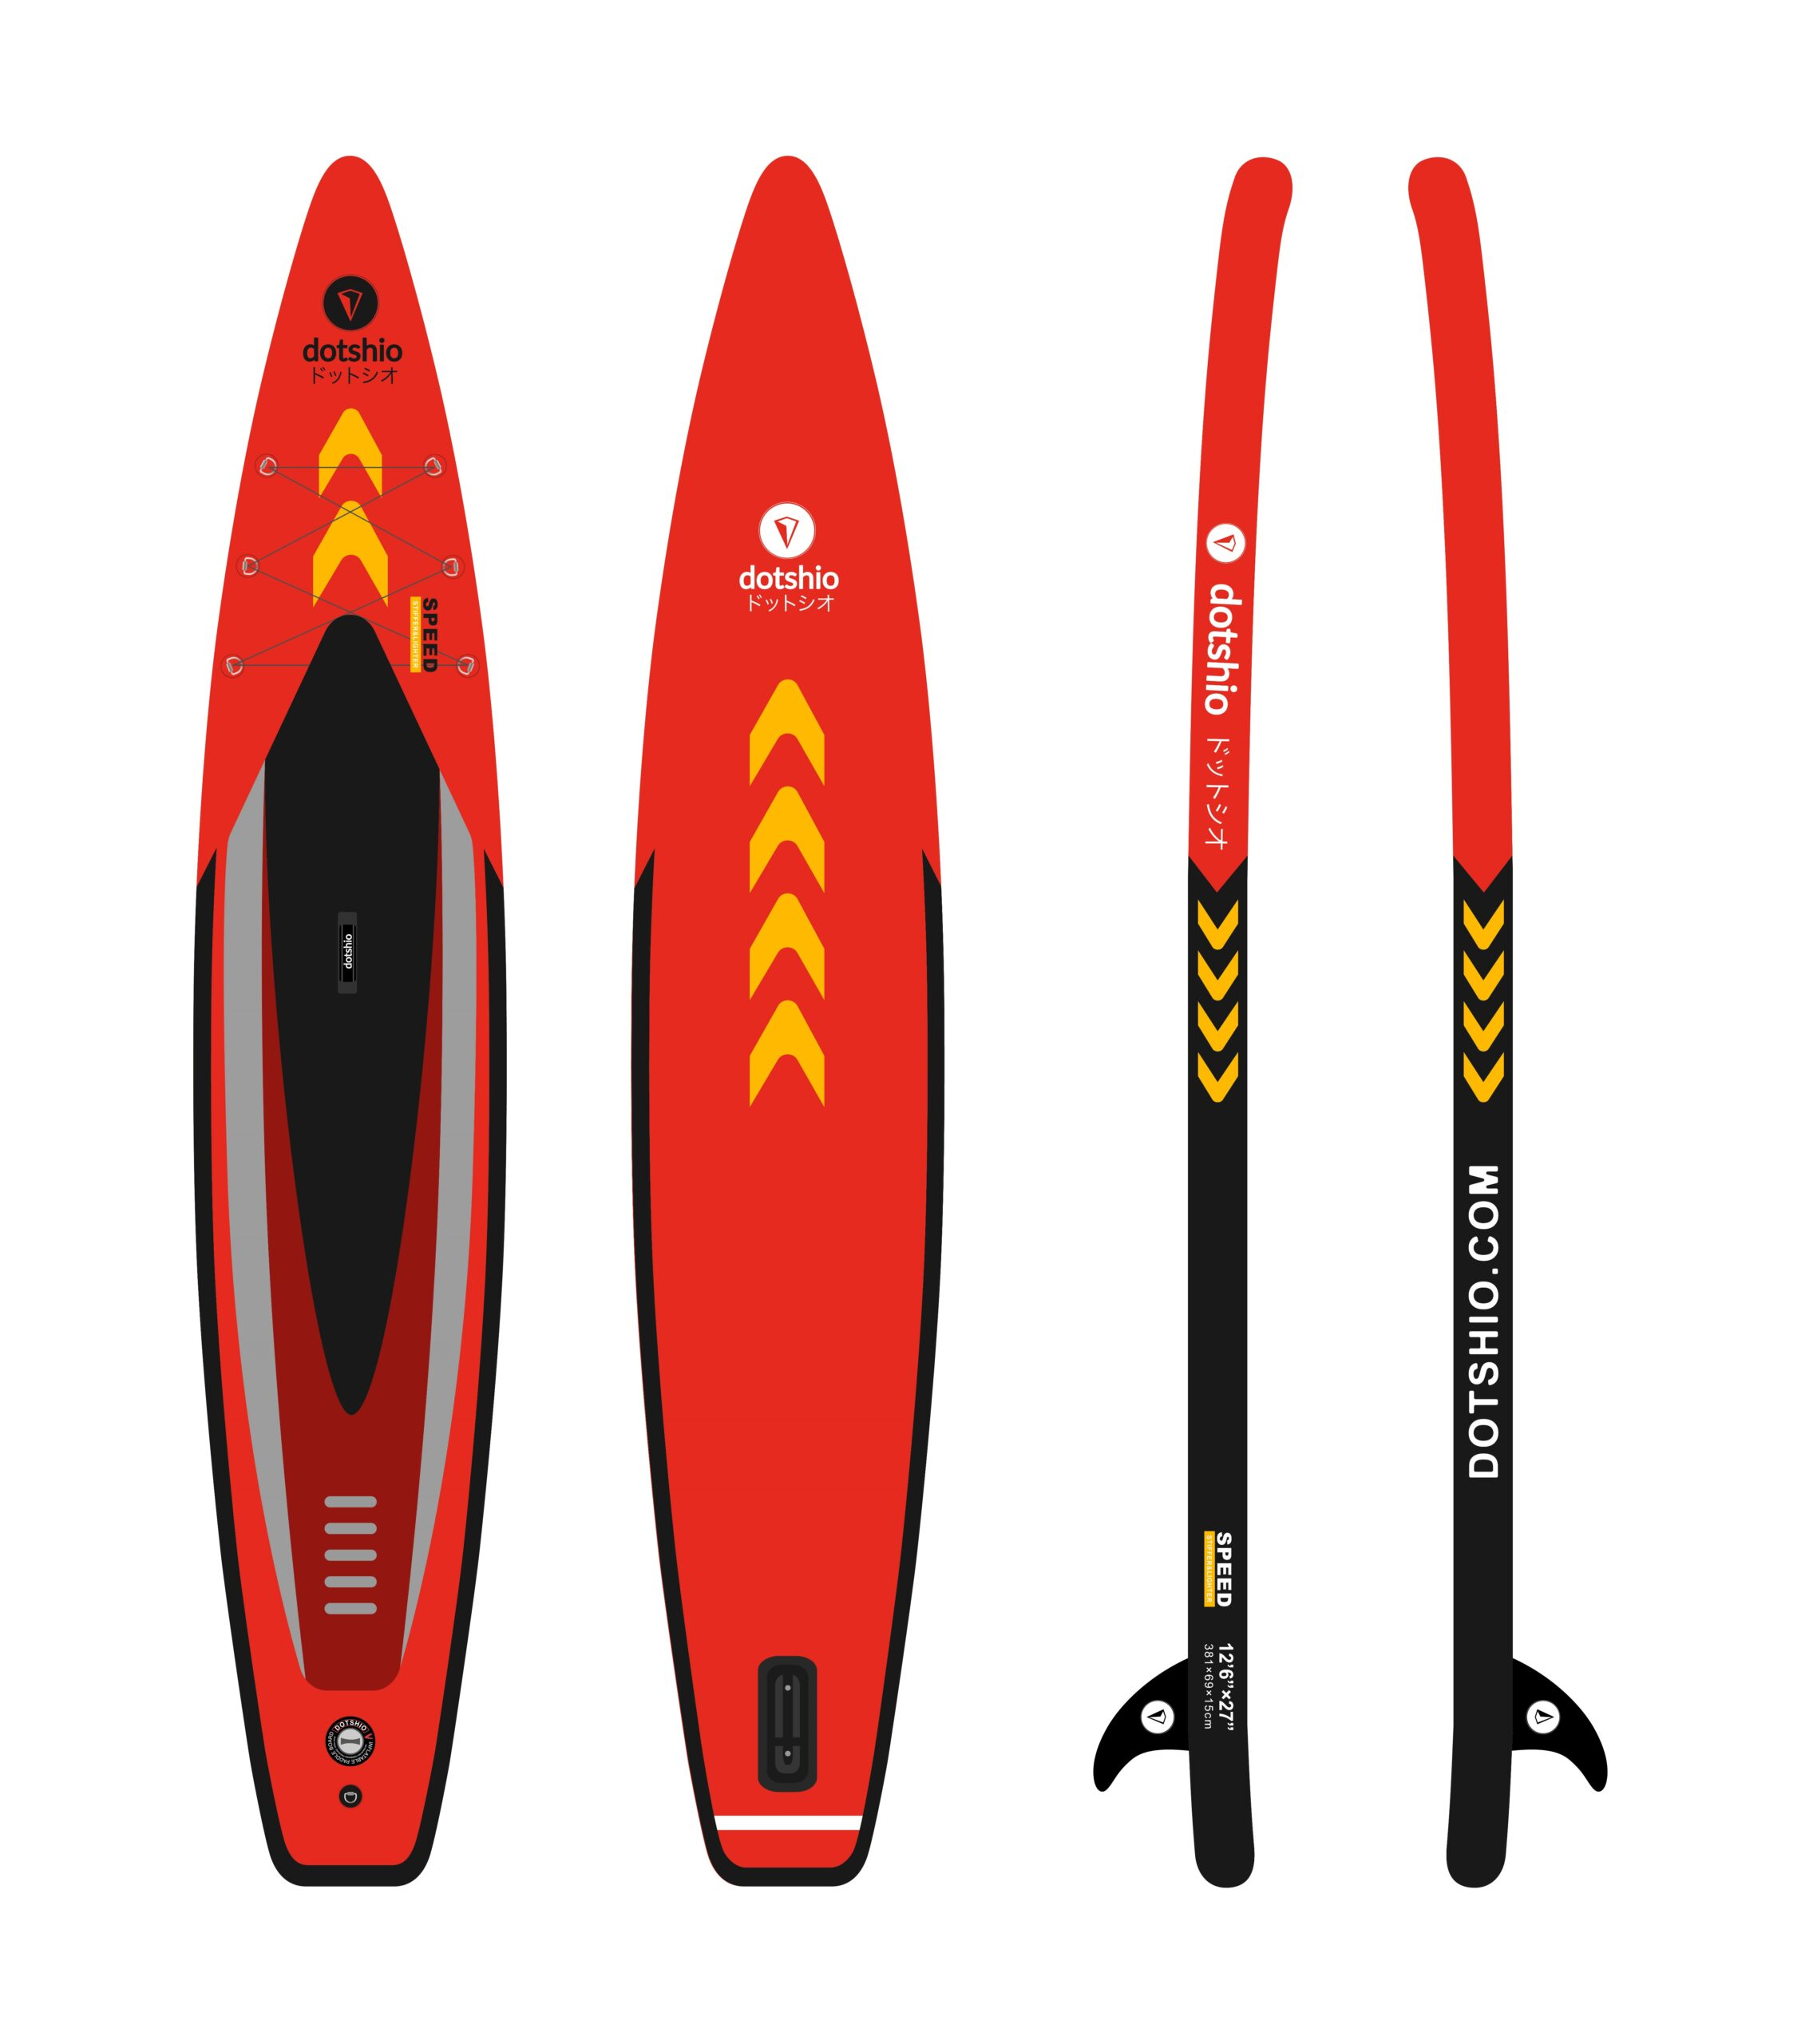 RACING SPEED-dotshio_paddle_surf_board_cheap_all_accesories